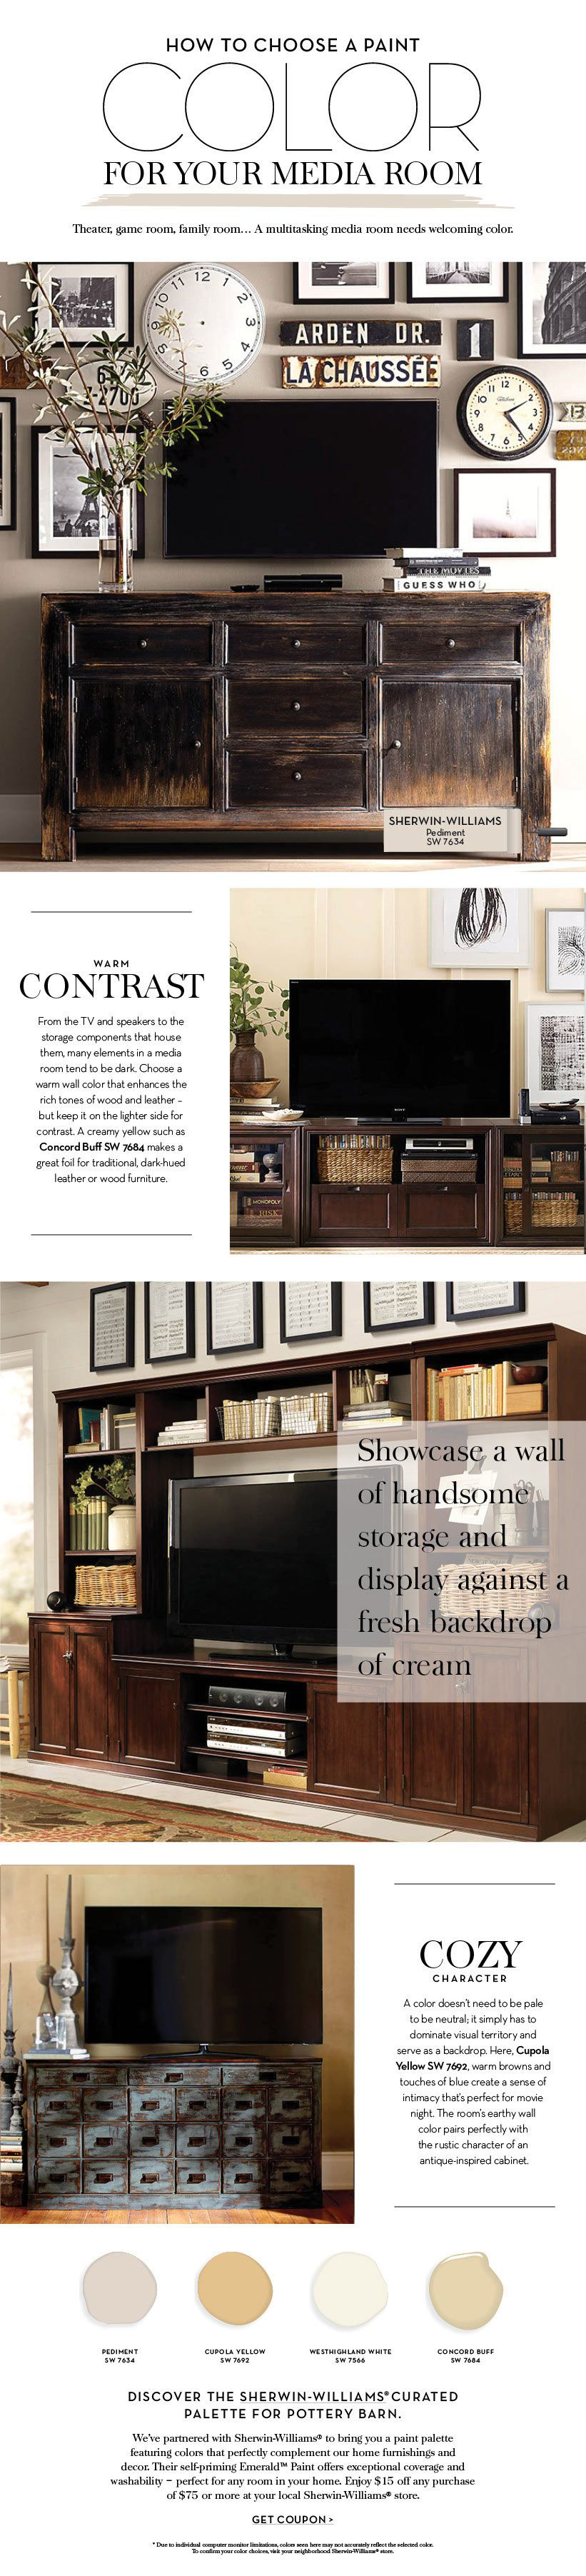 Choose a paint color for your media room pottery barn loft